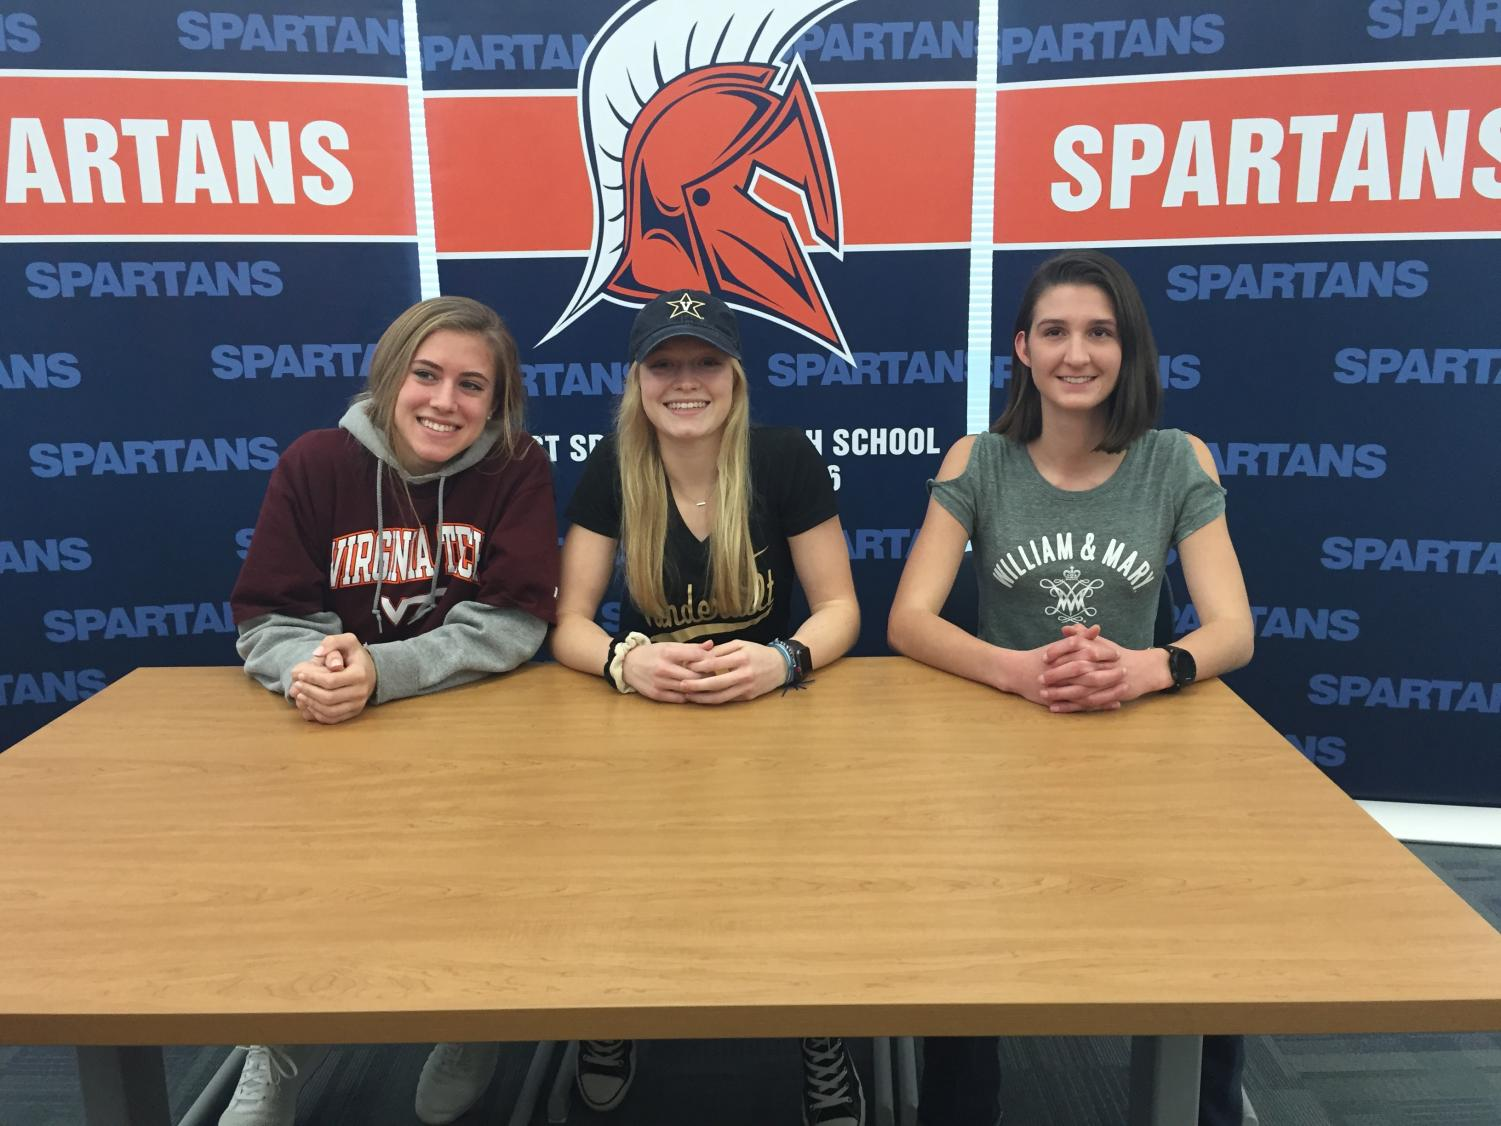 From left to right, seniors Chase Kappeler, Sarah Coleman, and Hope Stephens pose for a picture on their signing day. All three are to run: Kappeler at Virginia Tech, Coleman at Vanderbilt, and Stephens at William and Mary.